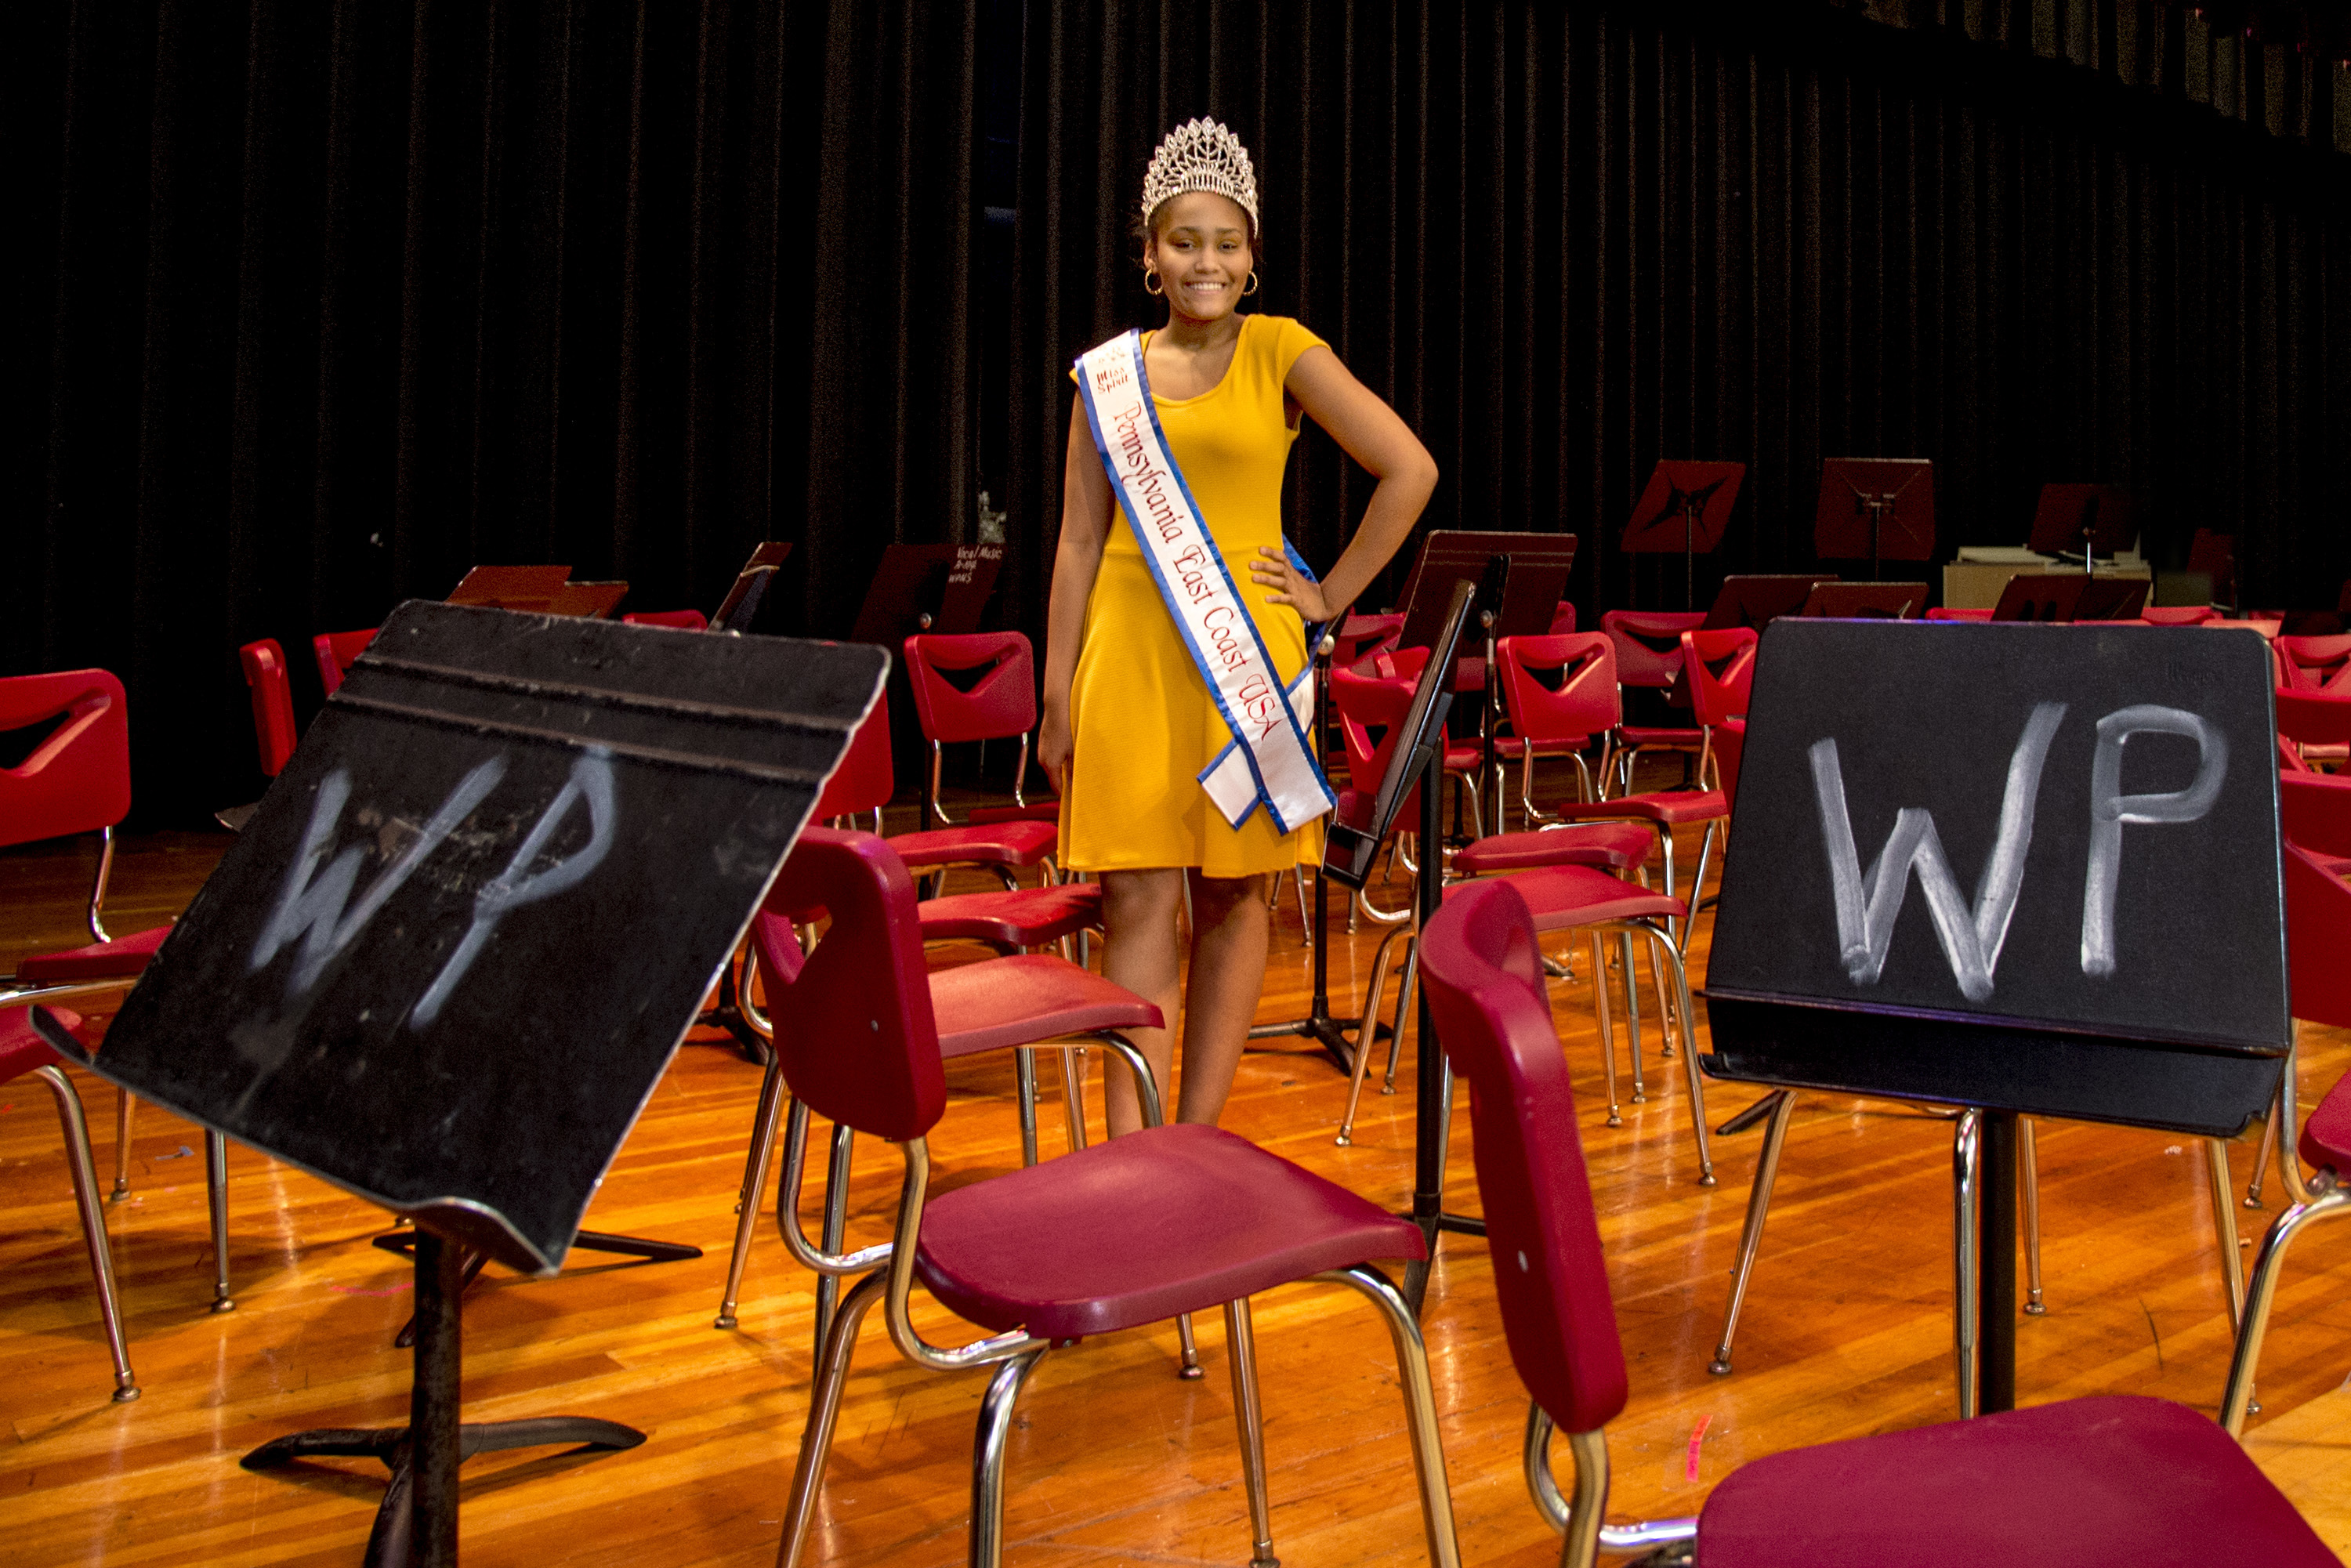 Aliyana McCrary, 13, poses with her East Coast USA Pageant crown and sash at her William Penn Middle School in Yardley May 1, 2018.